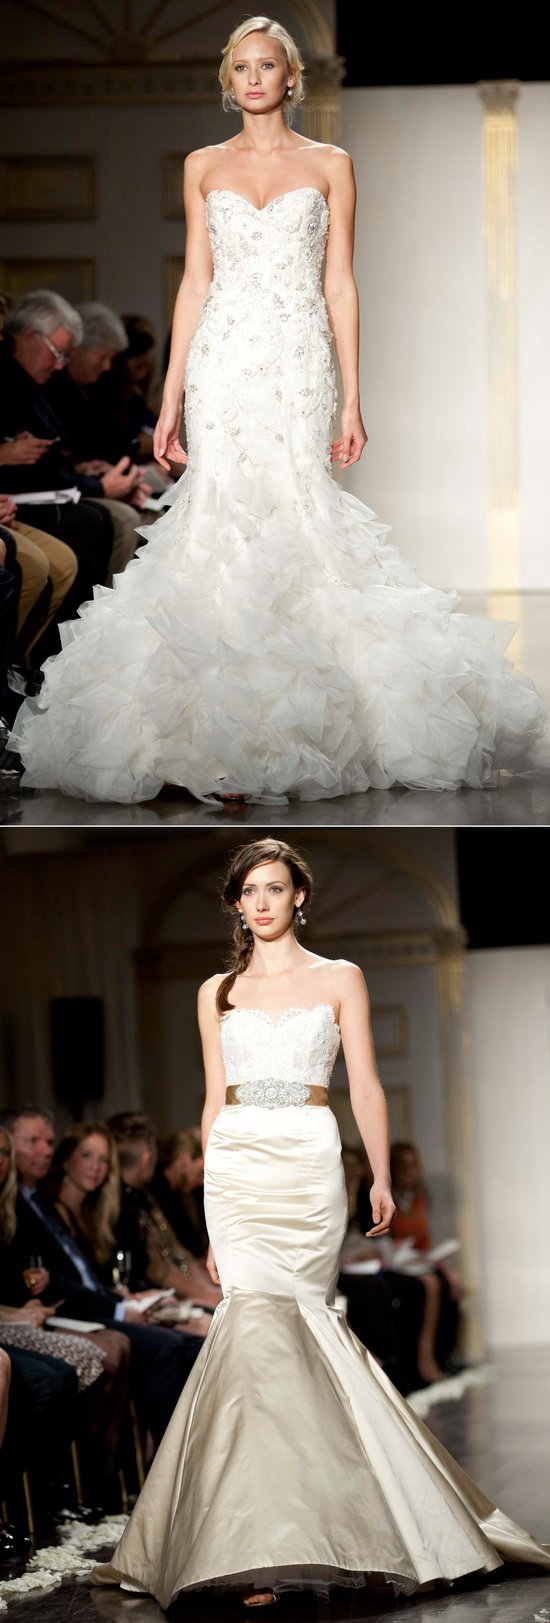 2012 mermaid wedding dresses by Lazaro and Jim Hjelm